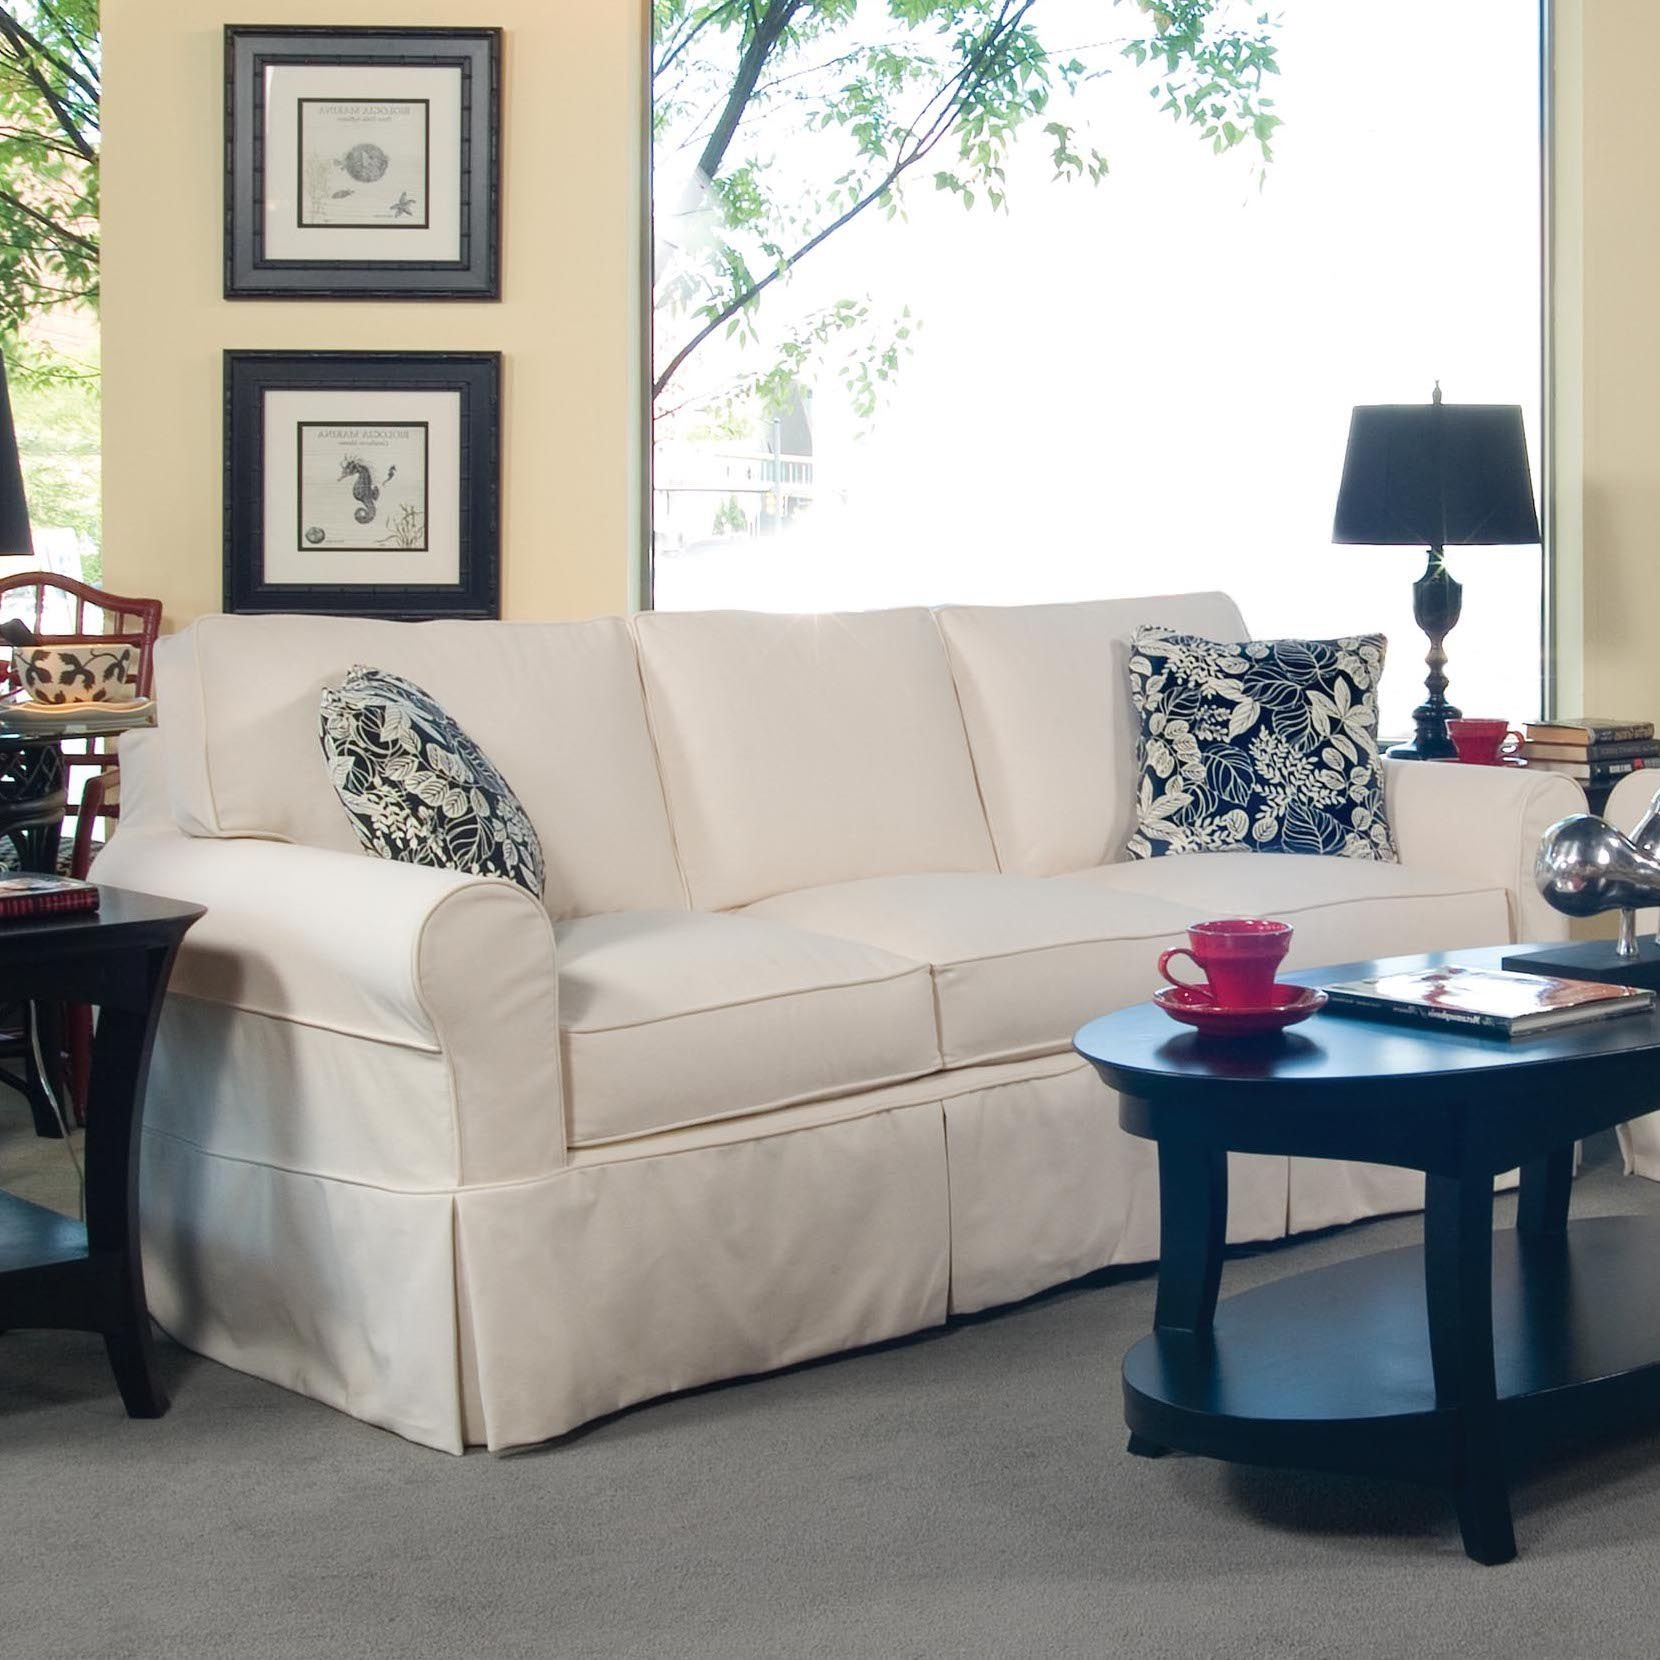 Slipcover Furniture Living Room: Braxton Culler Living Room Bedford Slipcover Sofa 728